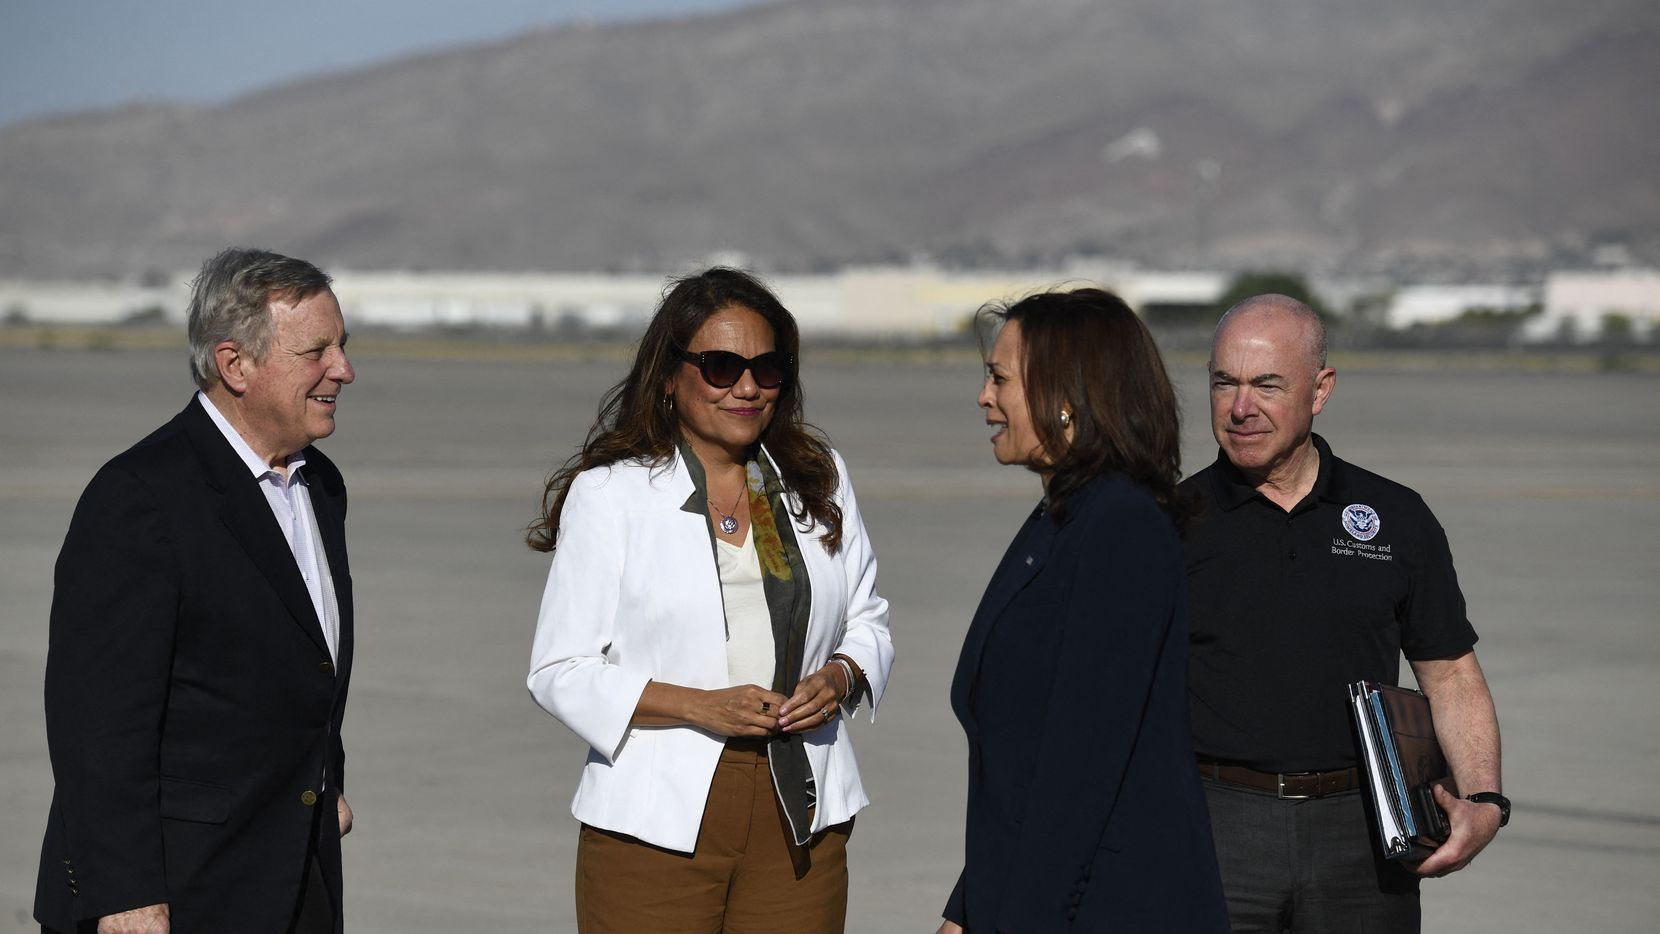 Vice President Kamala Harris speaks with Sen. Dick Durbin, D-Ill., Rep. Veronica Escobar, D-El Paso, and Homeland Security Secretary Alejandro Mayorkas upon arrival at El Paso International Airport on June 25, 2021, They flew together on Air Force 2 to tour the border and meet with migrant advocates.